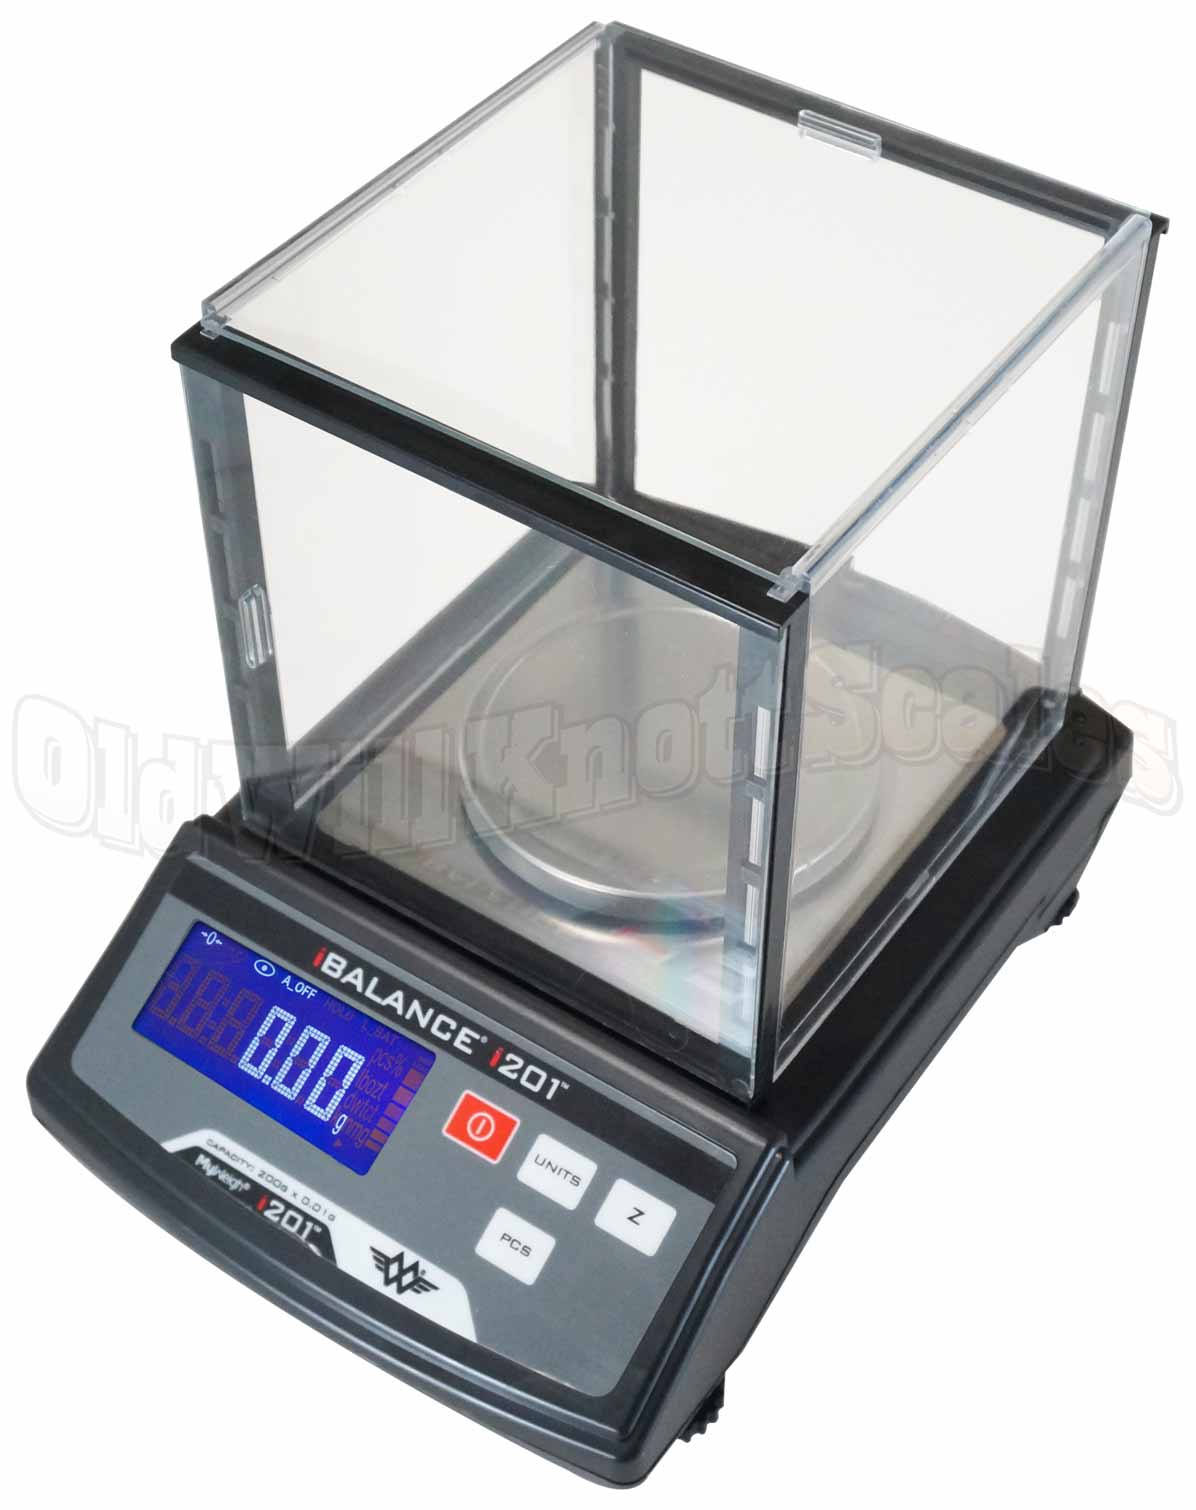 Precision Scale Precision Scales Precision Balances Accurate Scales